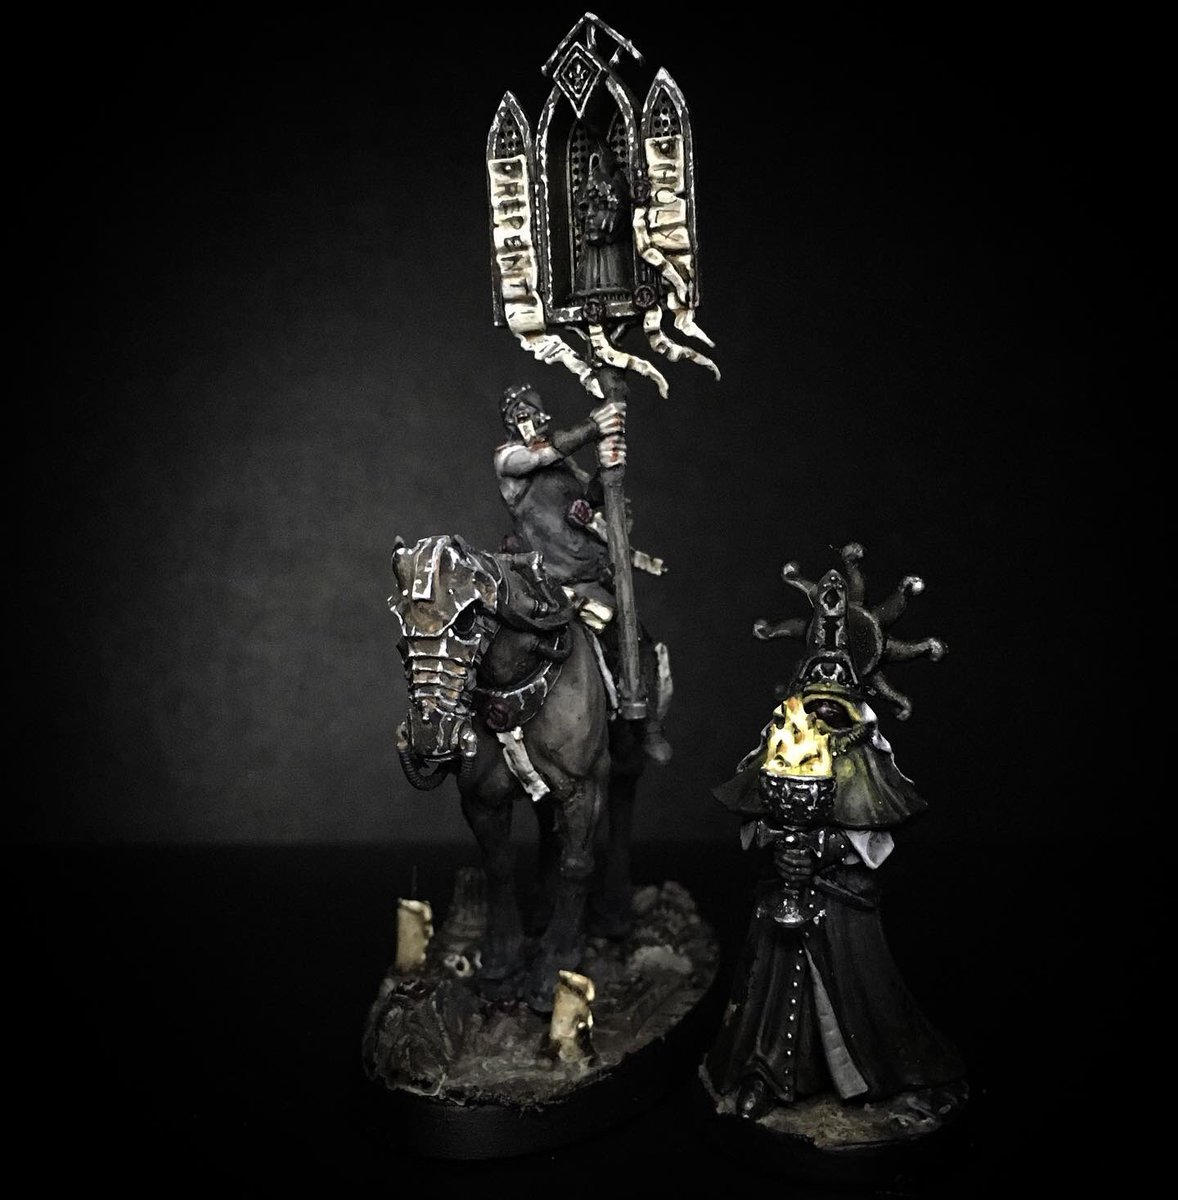 As well as prying Inquisitors, at night, the Streets of Vasaria are patrolled by Sigmar's Hallowed, skilled riders and reminders to the public of the God King's ever-present light #WarhammerCommunity #citiesofsigmar #ageofsigmar https://t.co/IUQPvrJdul